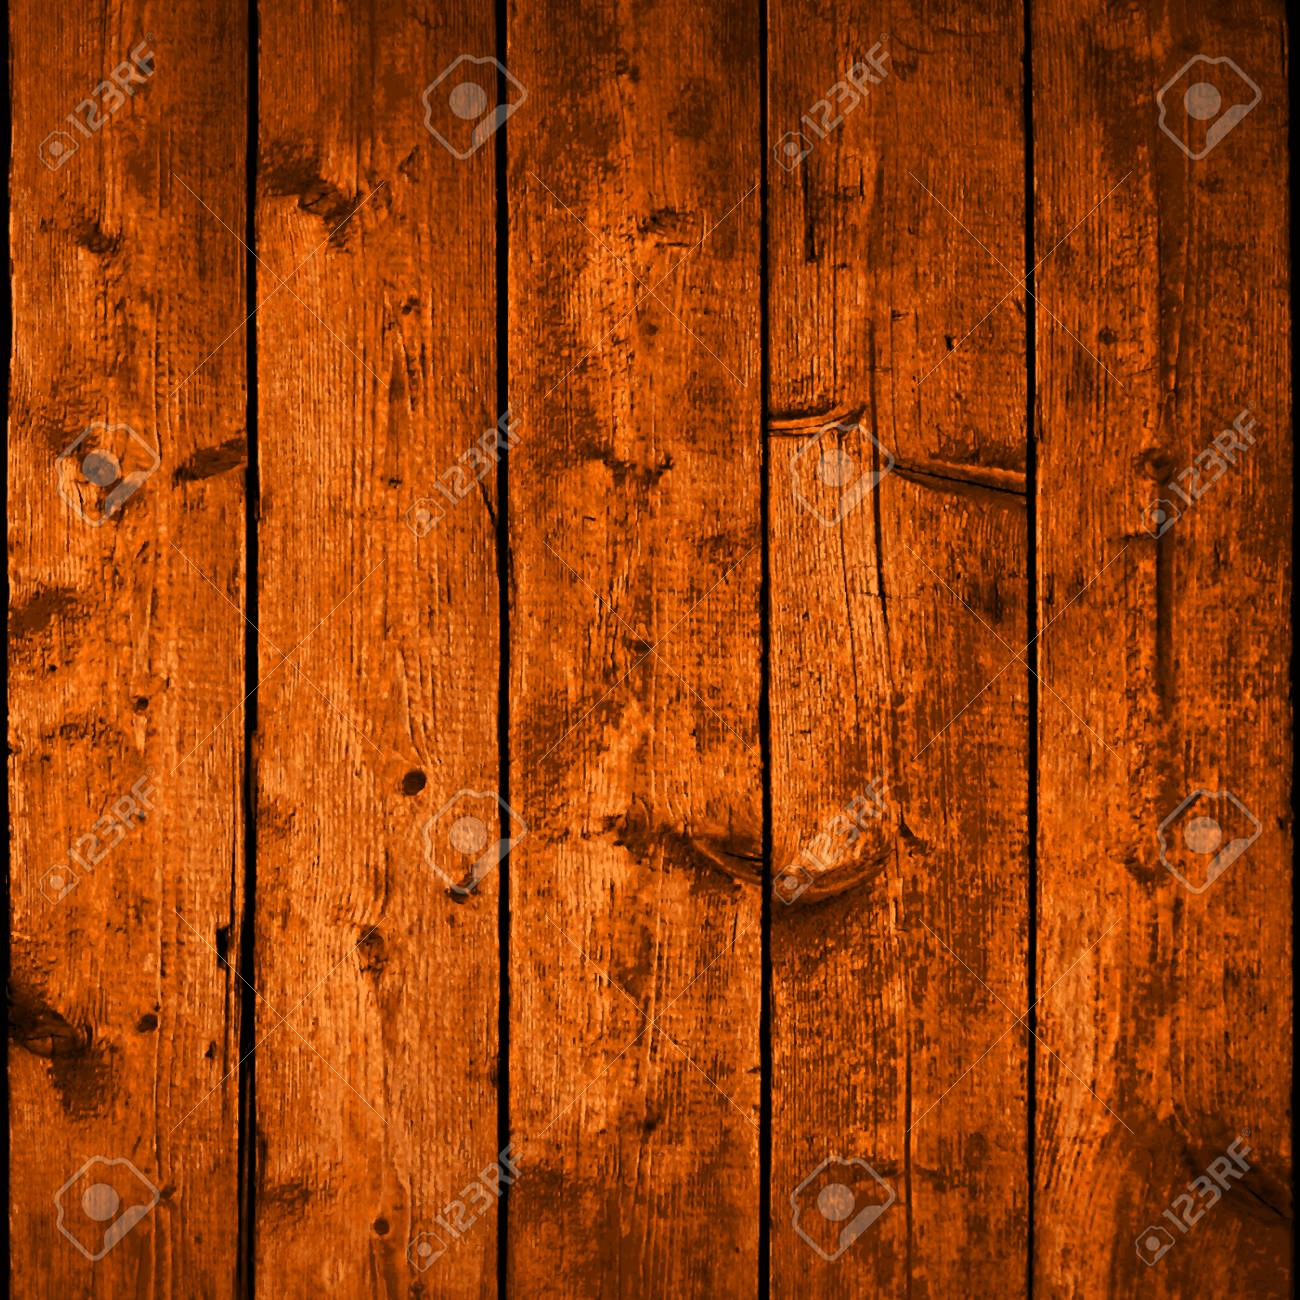 Realistic texture wood planks with natural structure. Empty brown color background square size. Vector illustration design elements save in 10 eps - 61465840